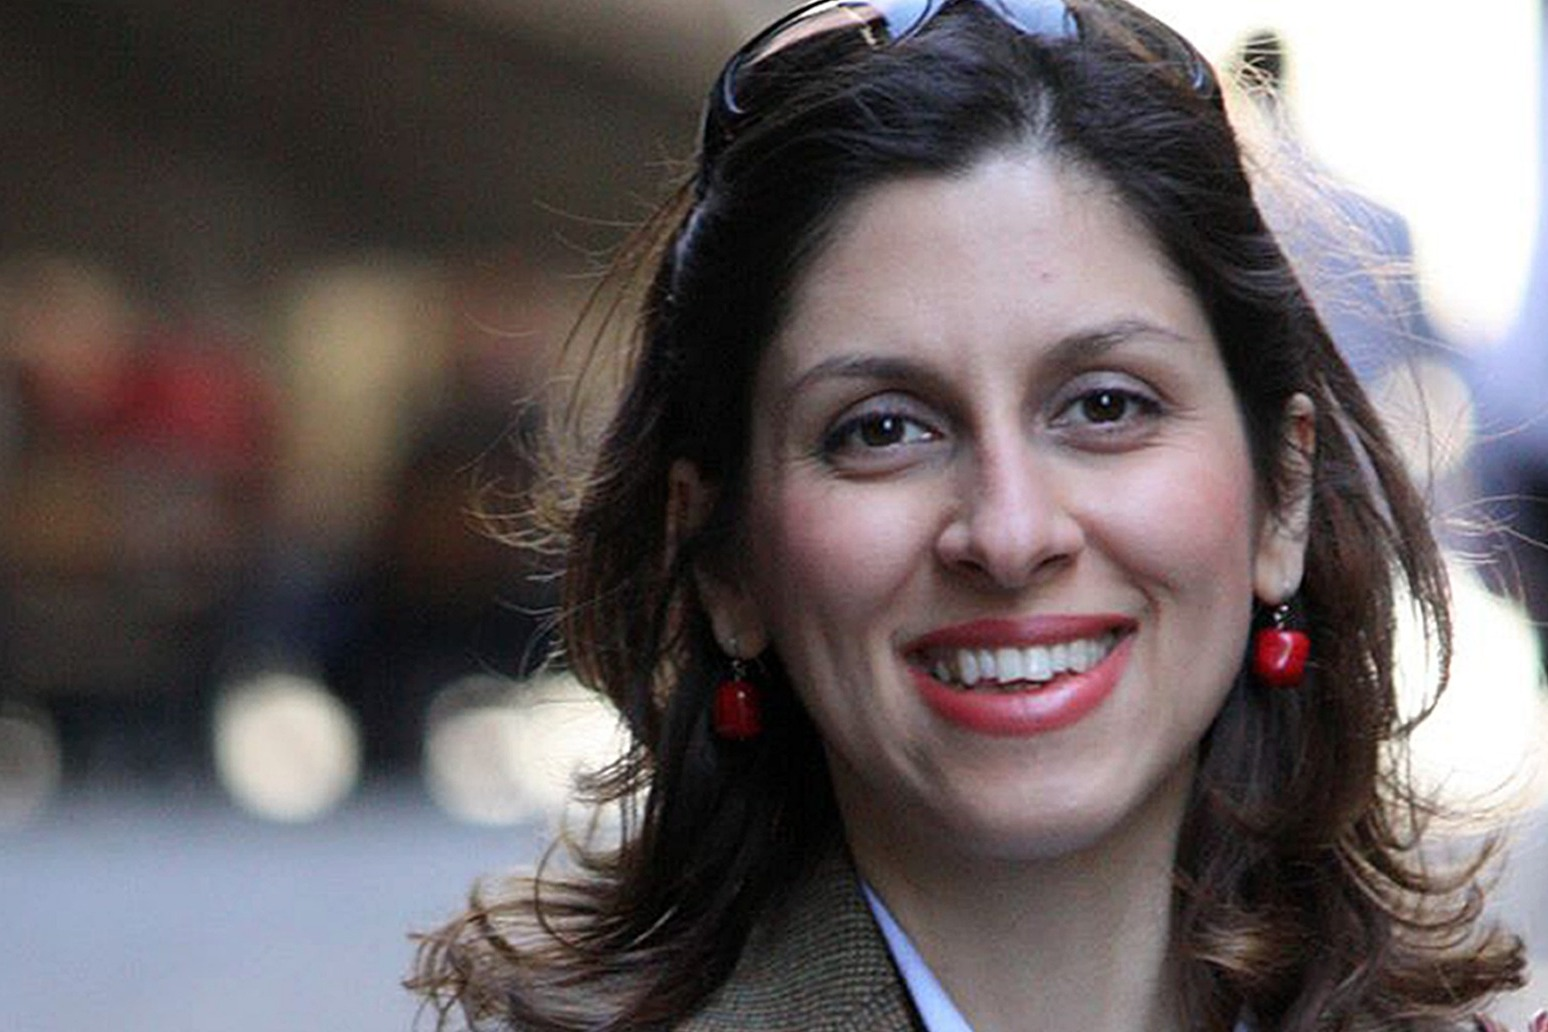 Nazanin Zaghari-Ratcliffe 'to be released as part of Iran prisoner exchange'